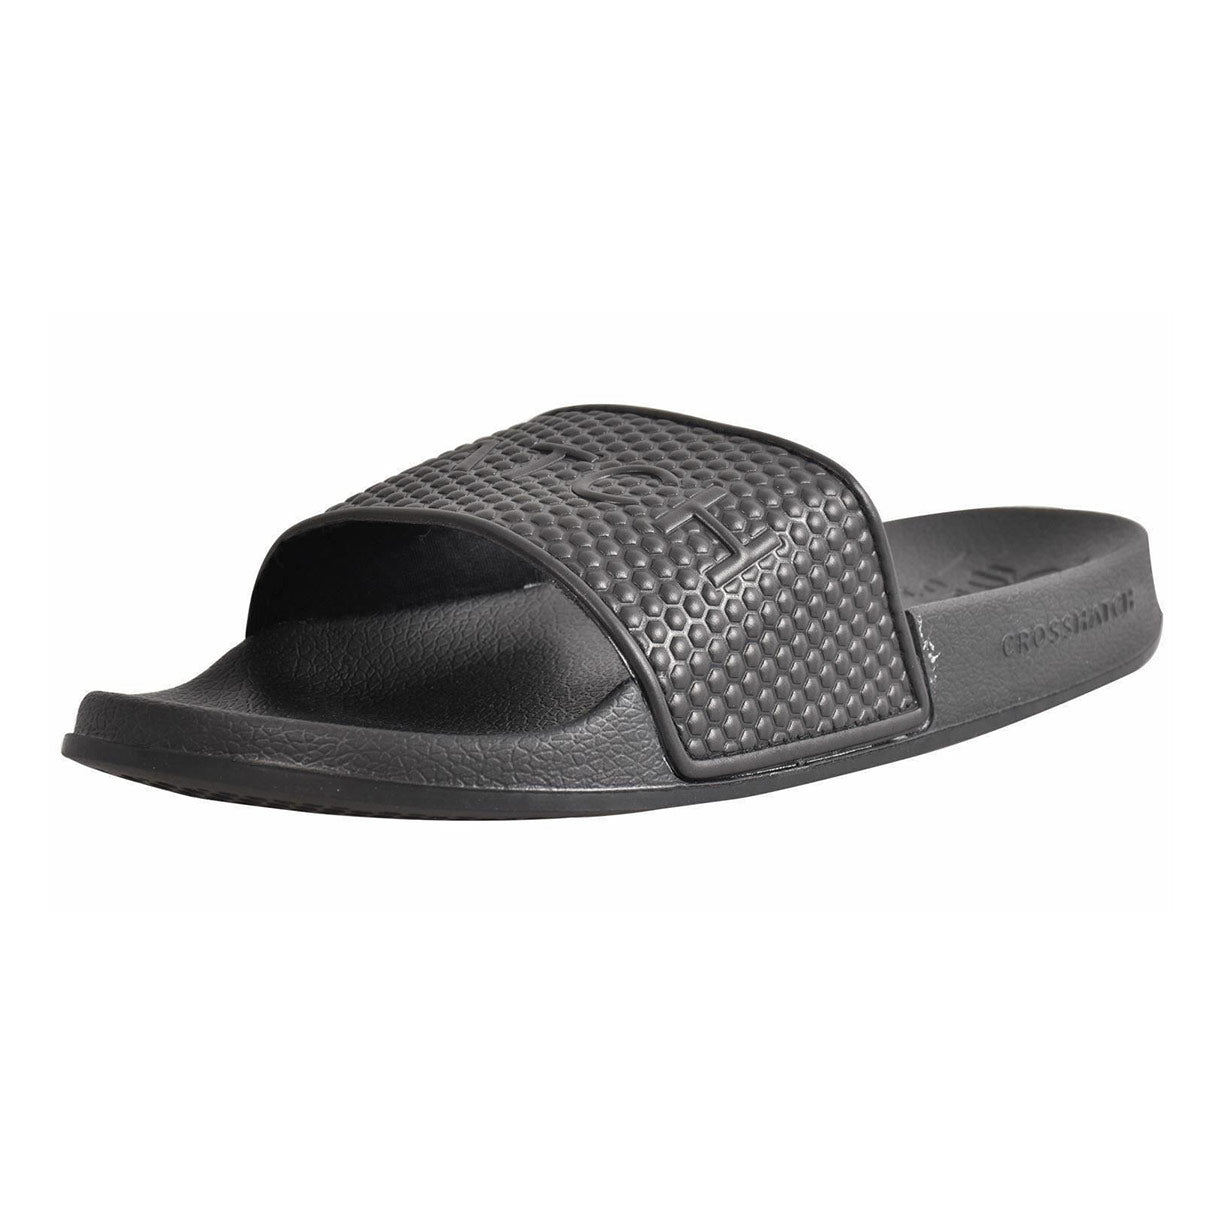 Crosshatch Tulum Sliders Black